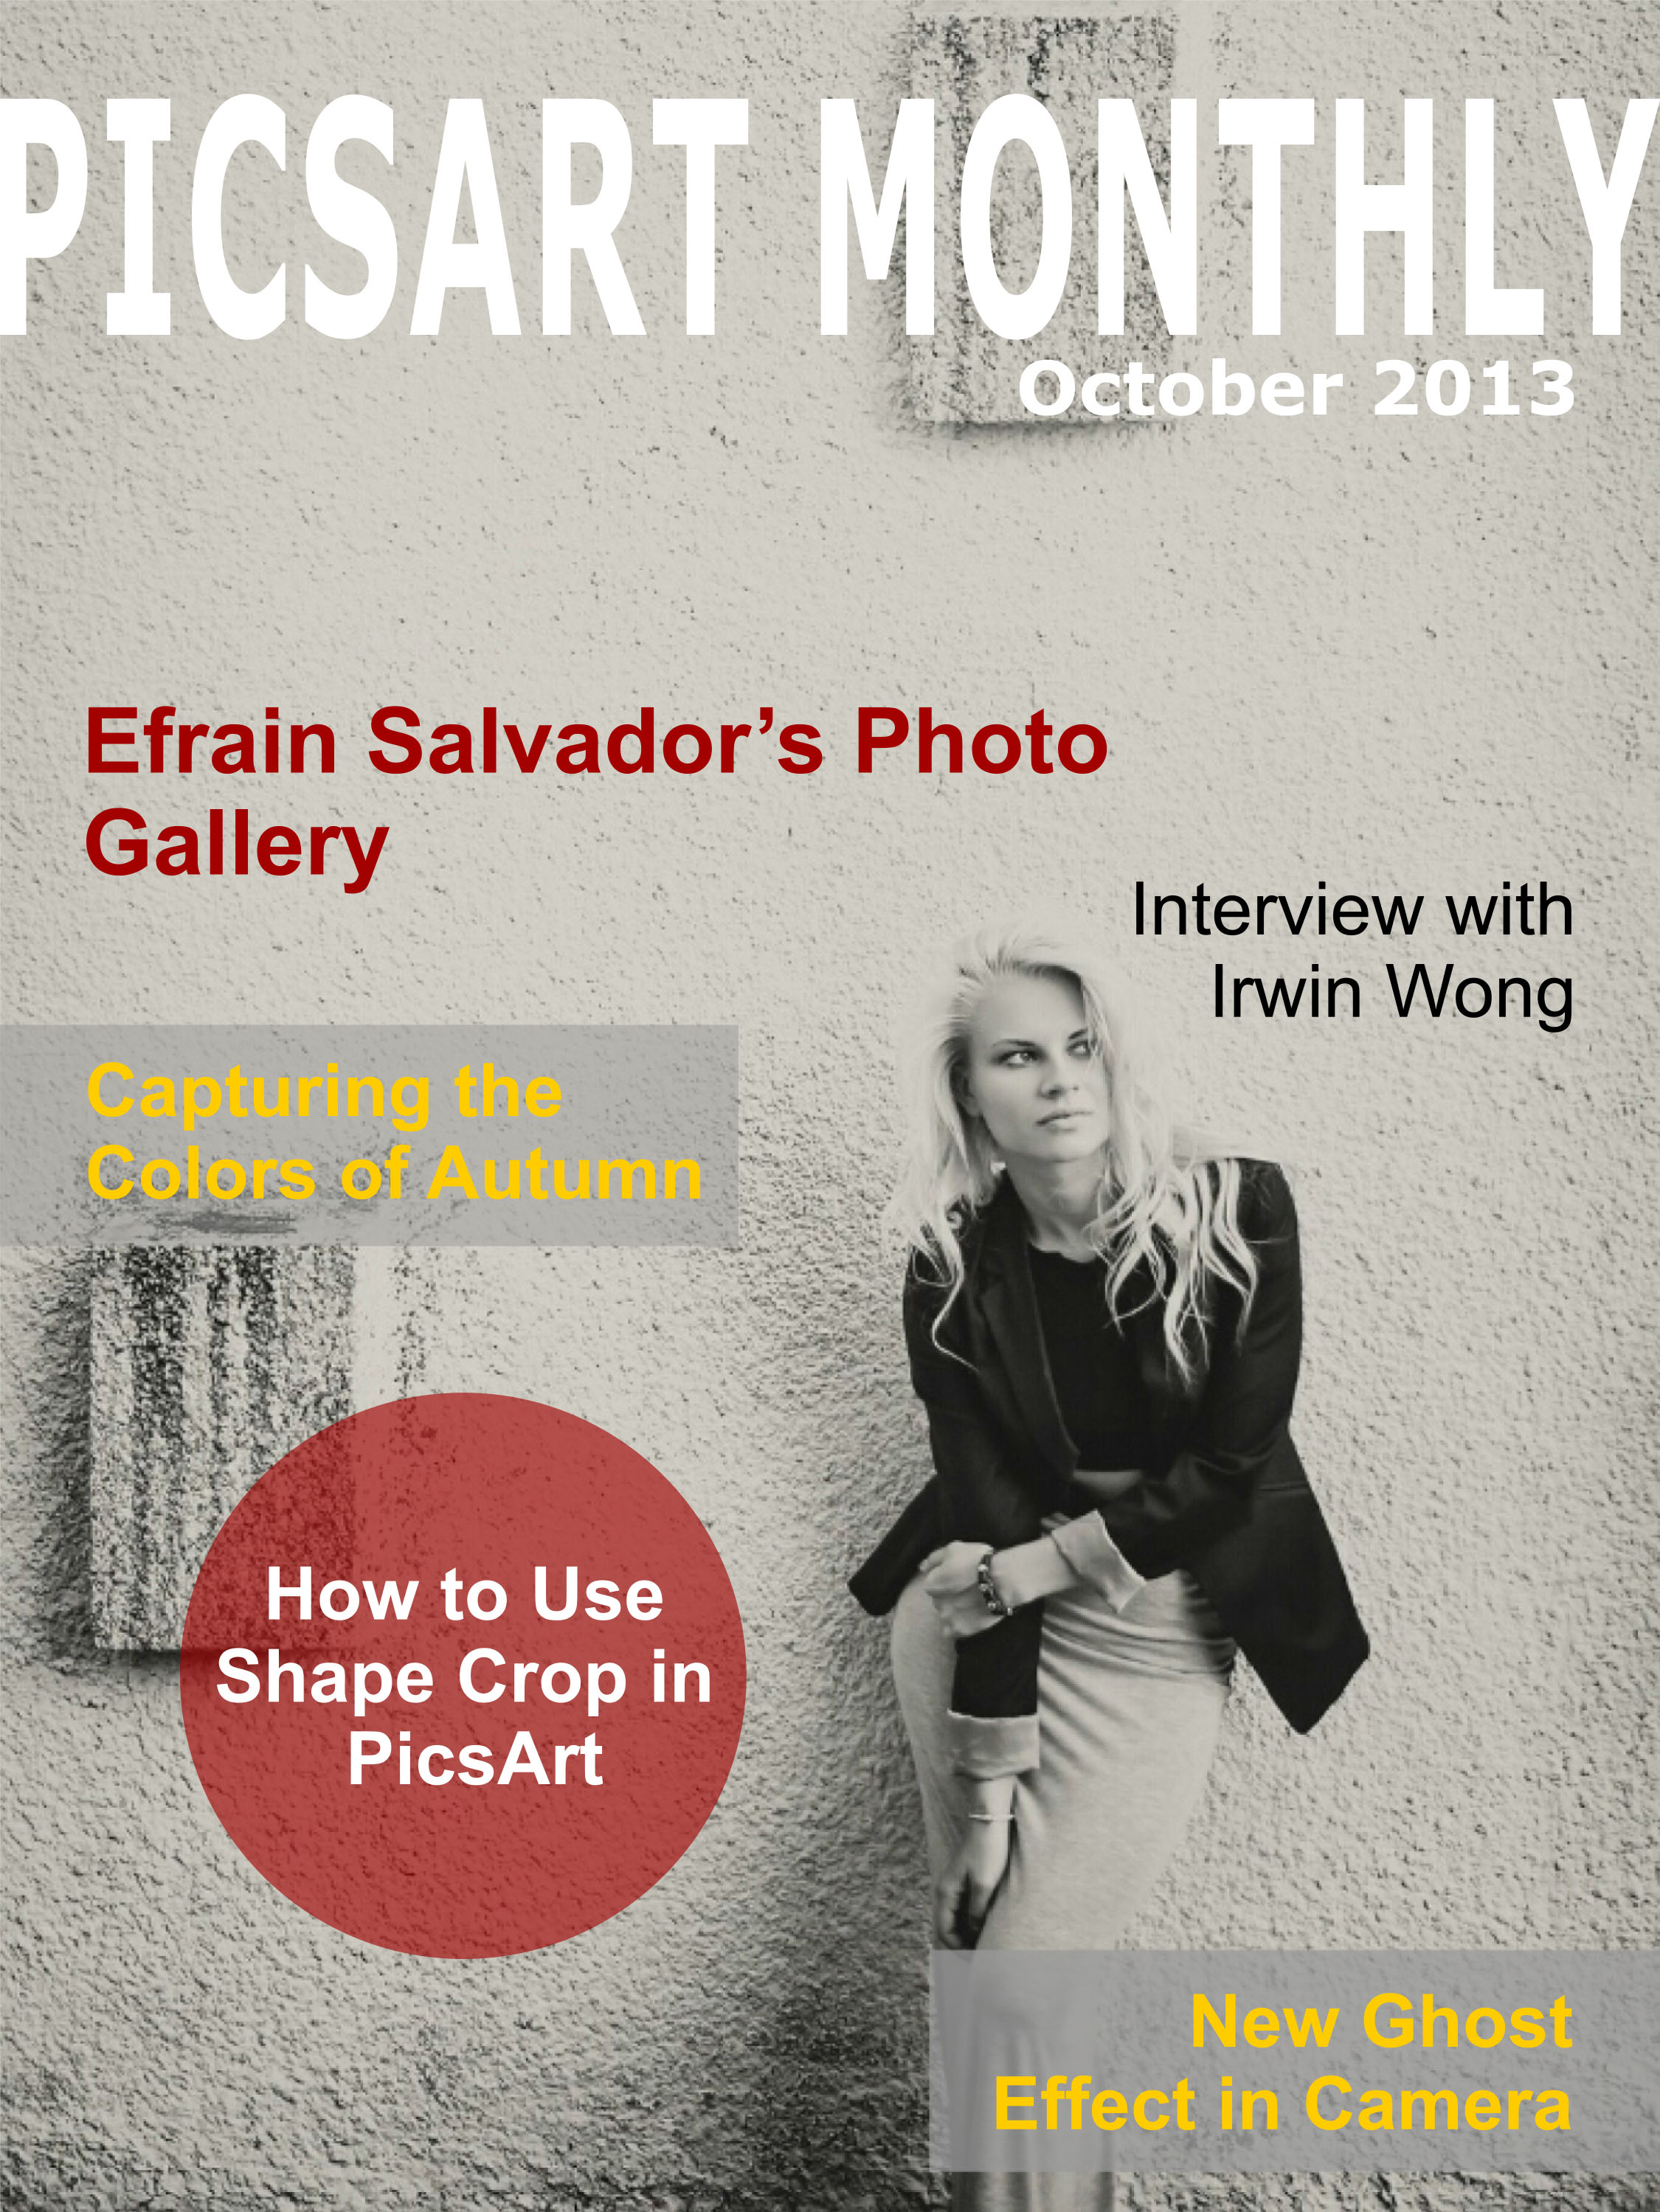 Picsart monthly magazine with Irwin Wong